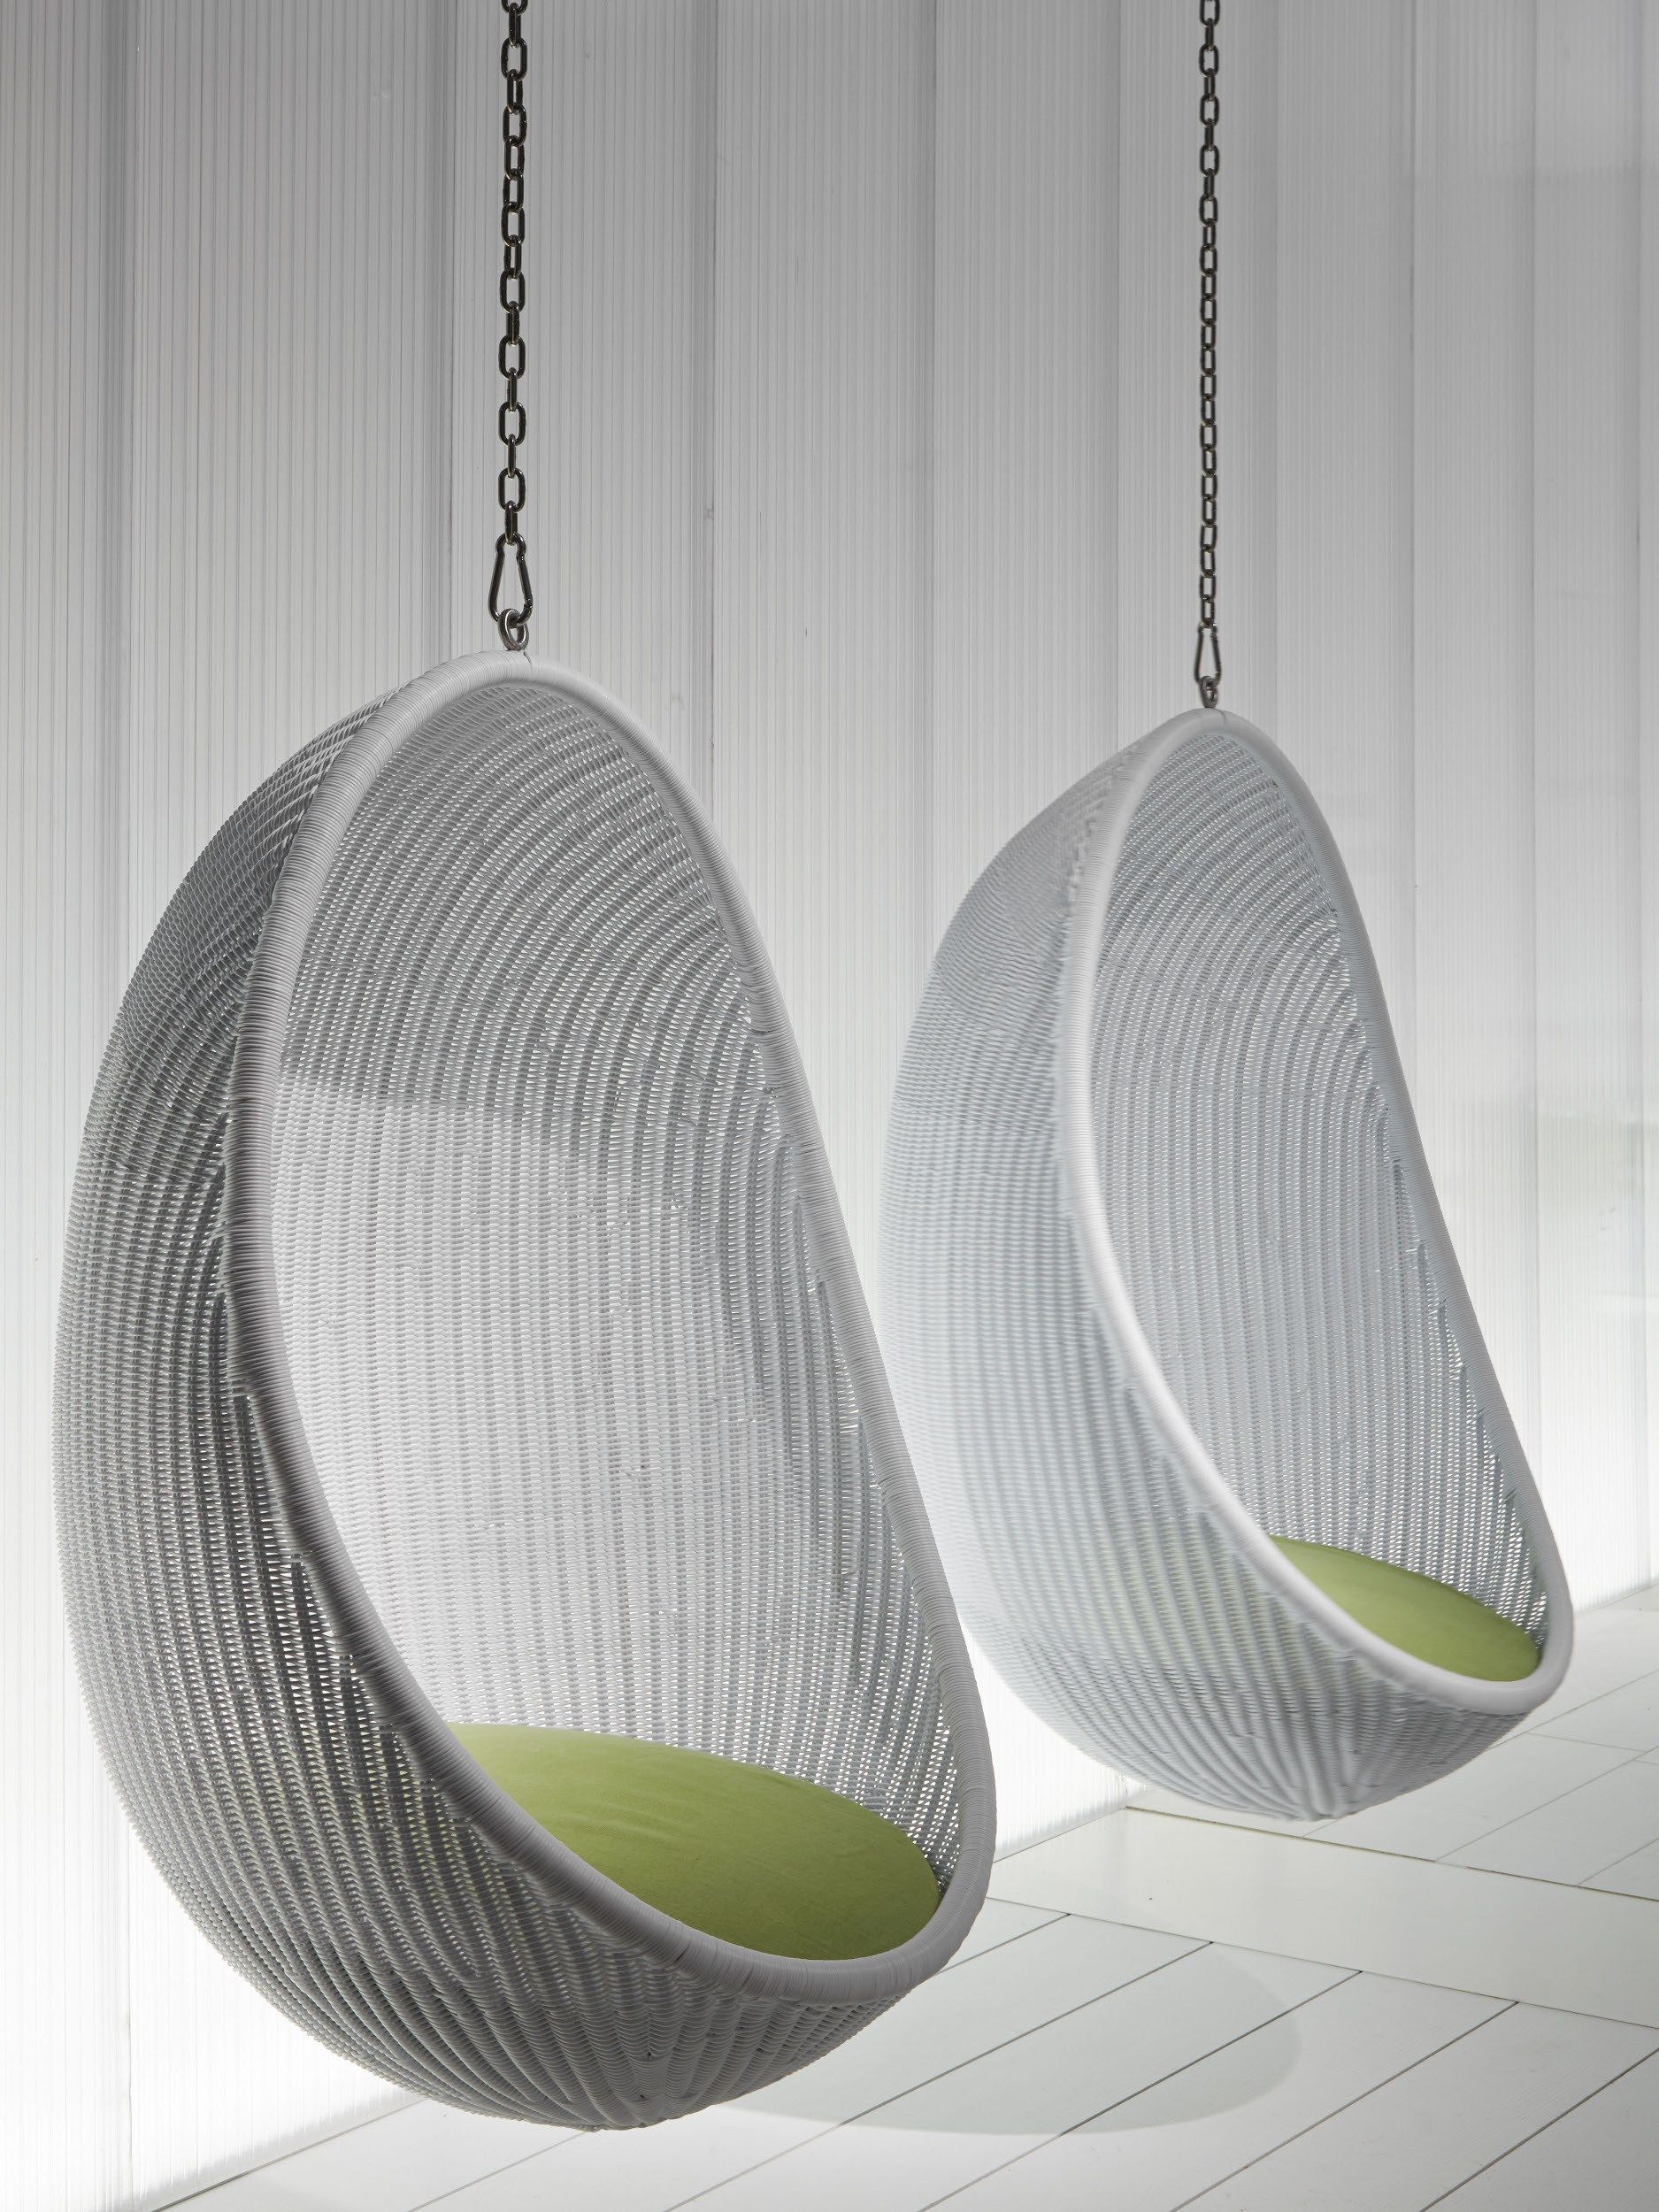 furniture nice looking white woven rattan two hanging egg chair